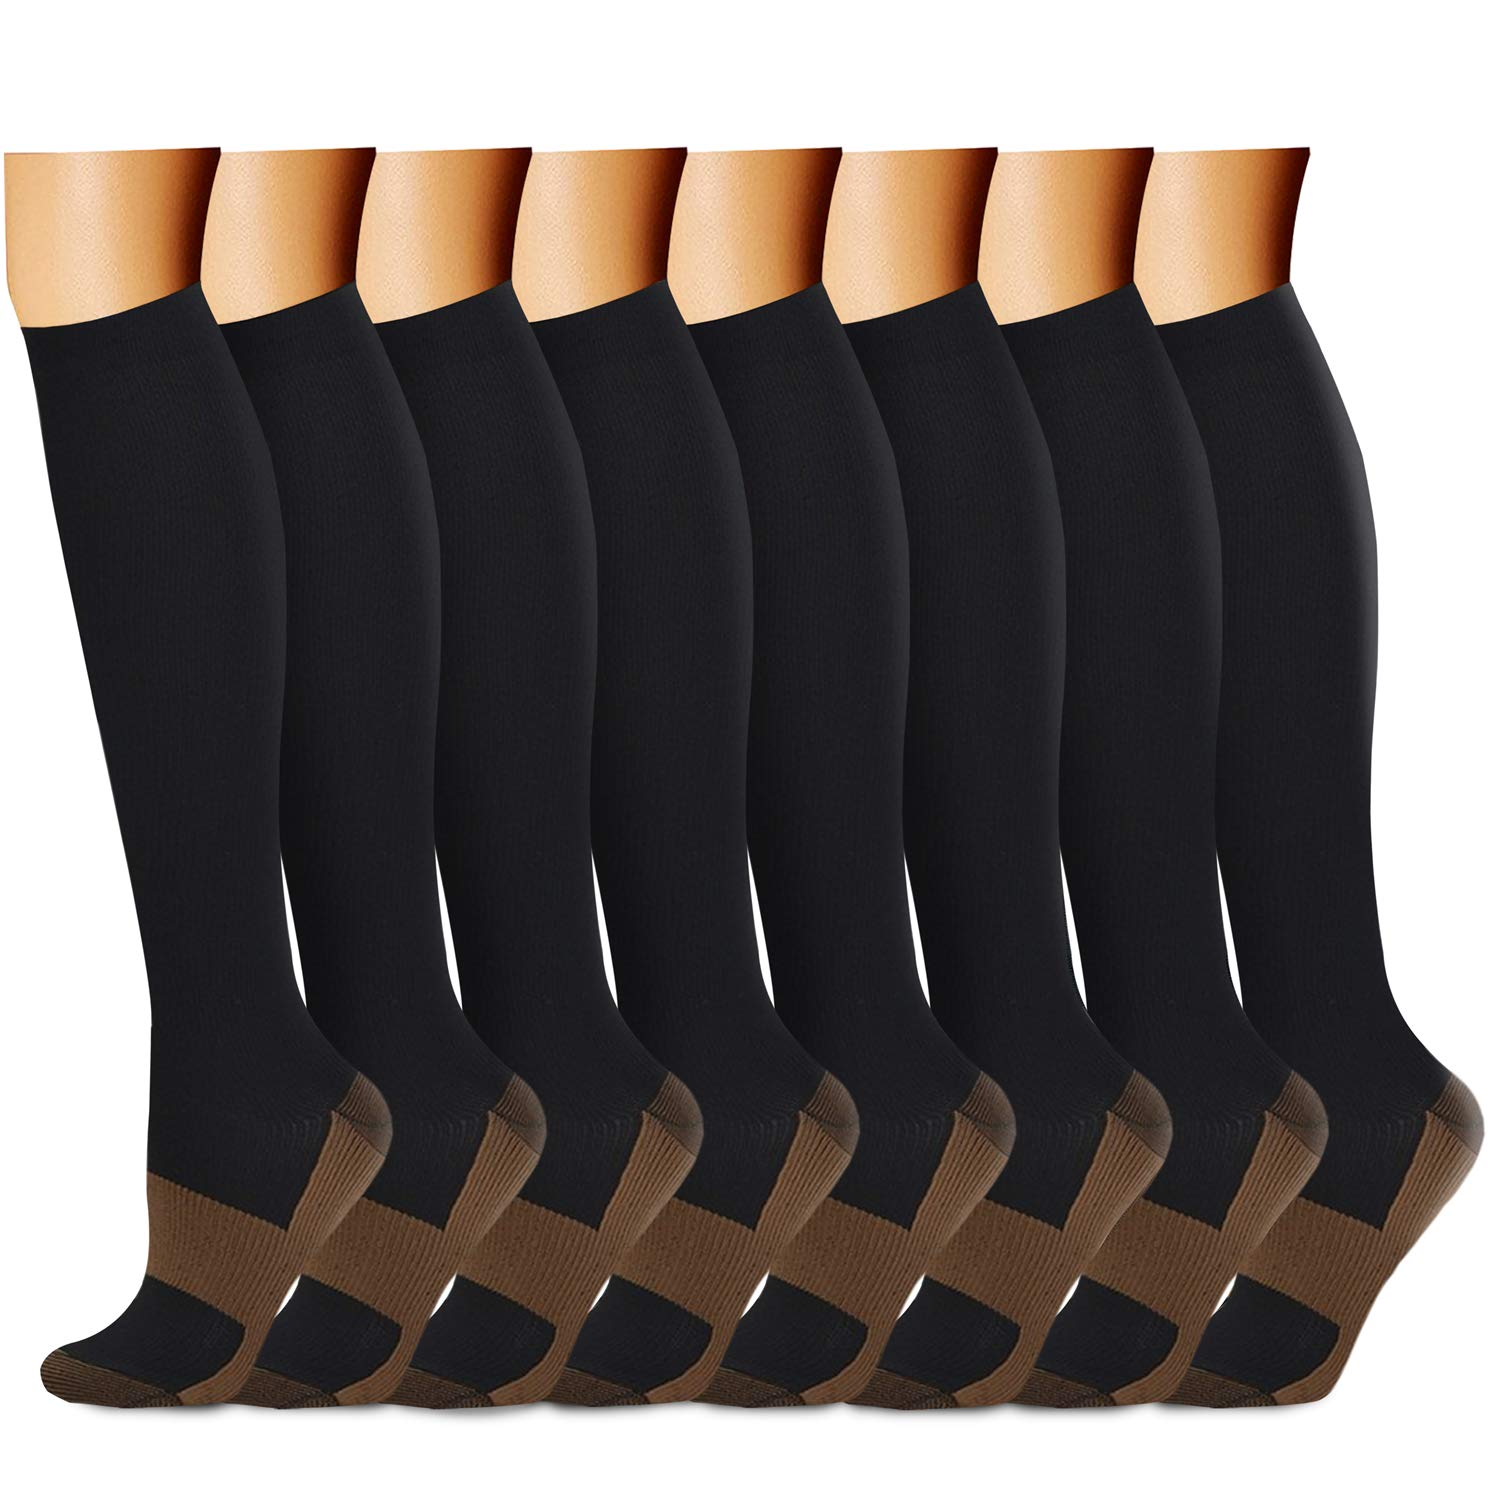 QUXIANG Copper Compression Socks for Women and Men - Best Medical Sports, Nursing, Running, Cycling, Athletic, Edema, Diabetic, Varicose Veins, Travel, Pregnancy & Maternity 15-20 mmHg (S/M, Multi 01)